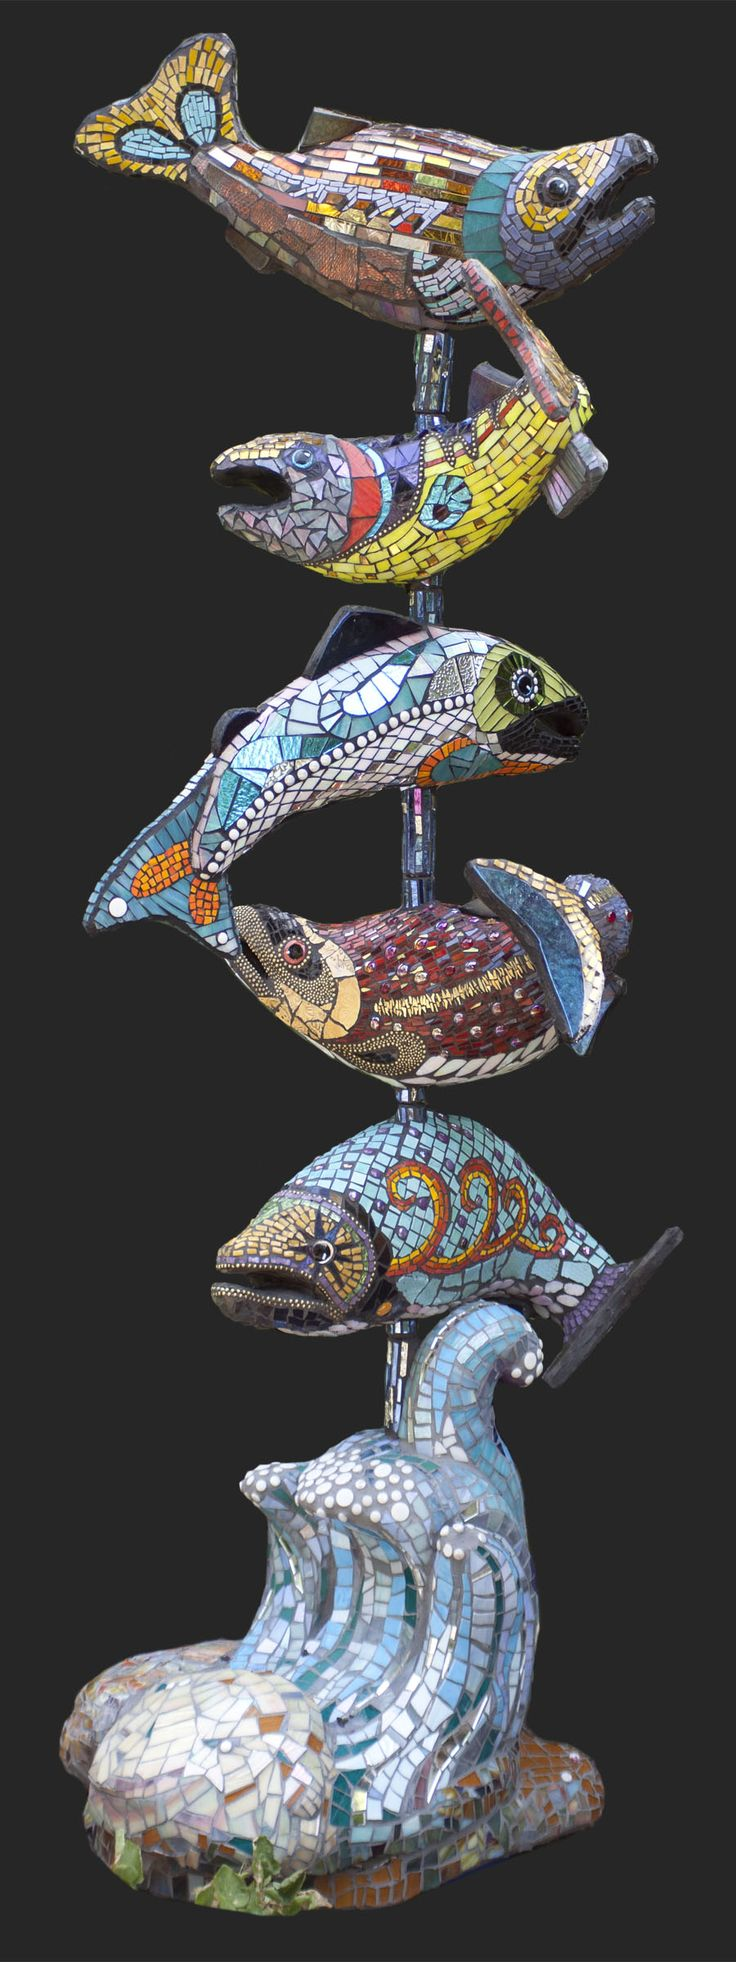 Mosaic fish totem 6' Salmon Totem Sculpture by katherineengland.com